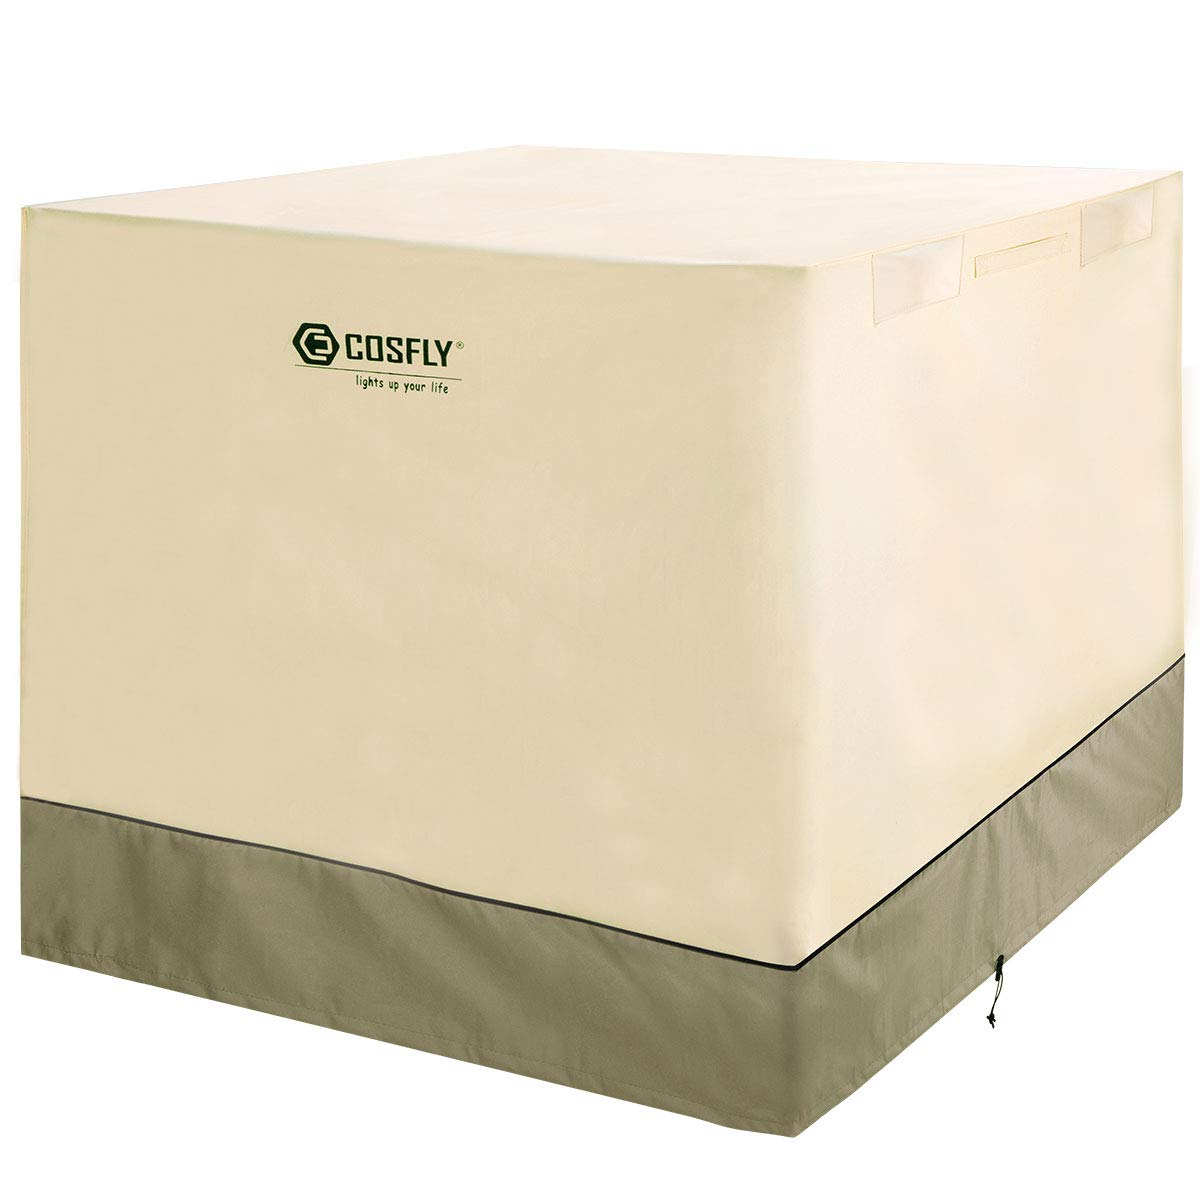 COSFLY Air Conditioner Cover